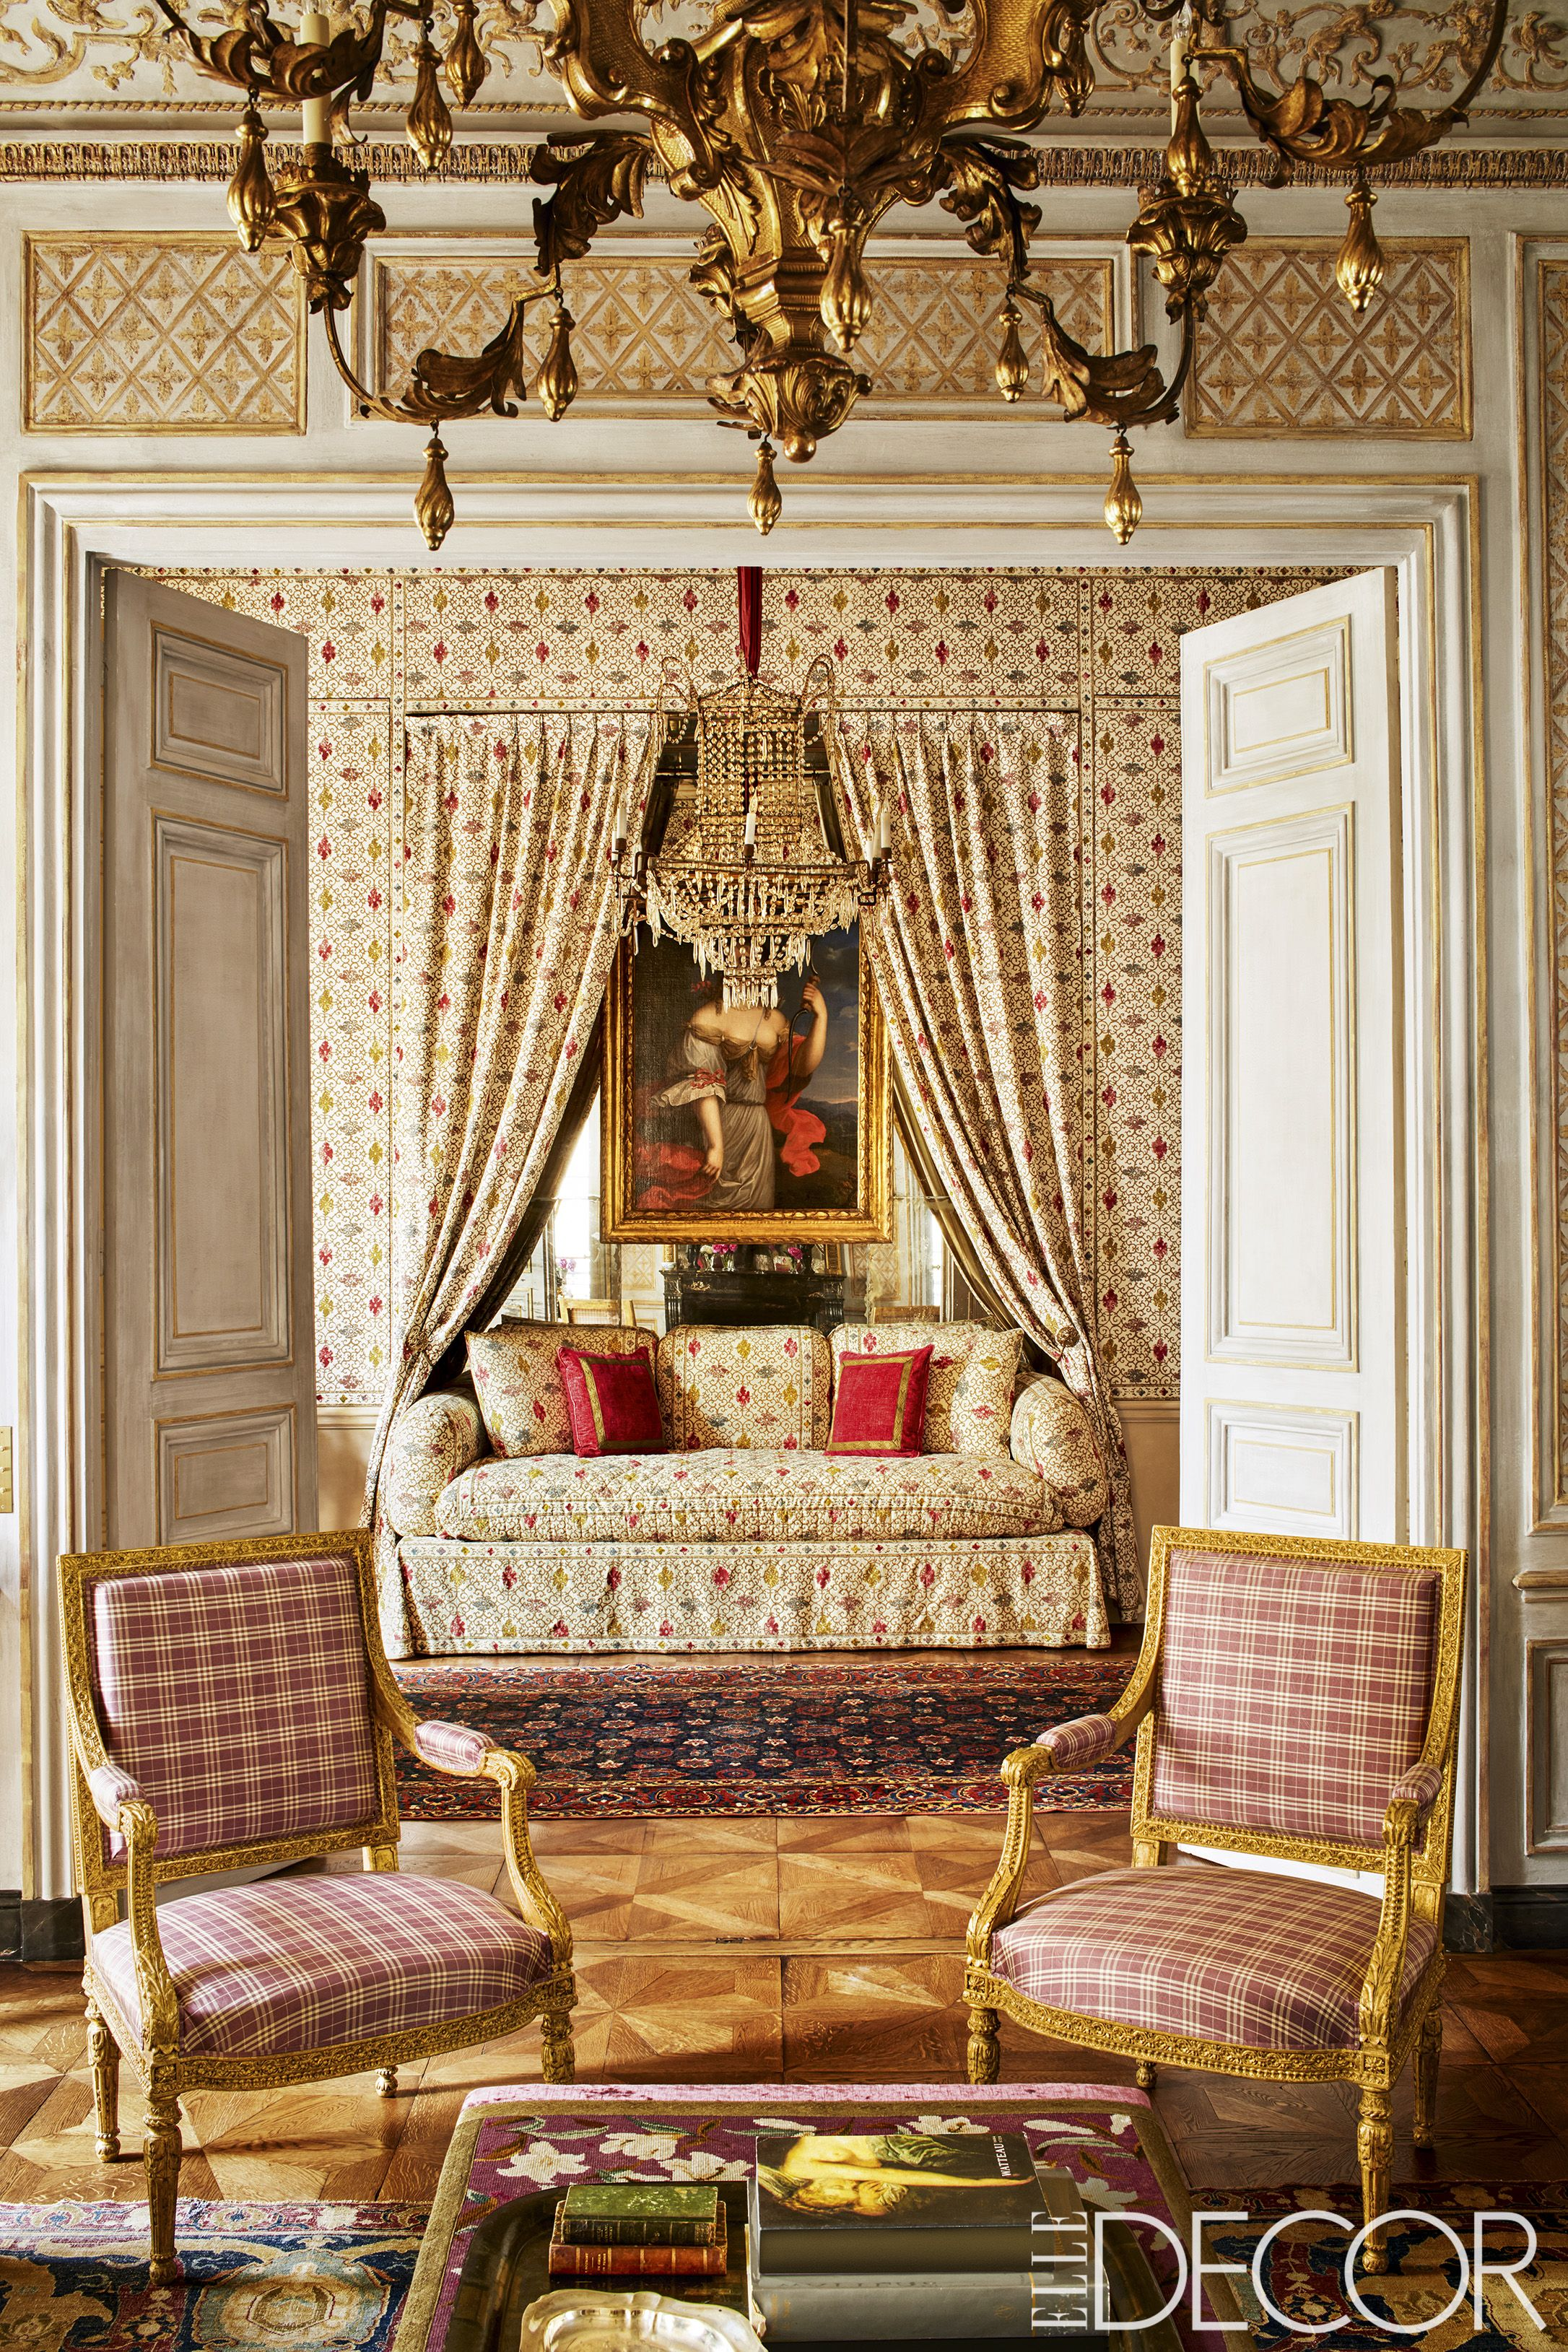 Cool French Country Style Interiors Rooms With French Country Decor Alphanode Cool Chair Designs And Ideas Alphanodeonline